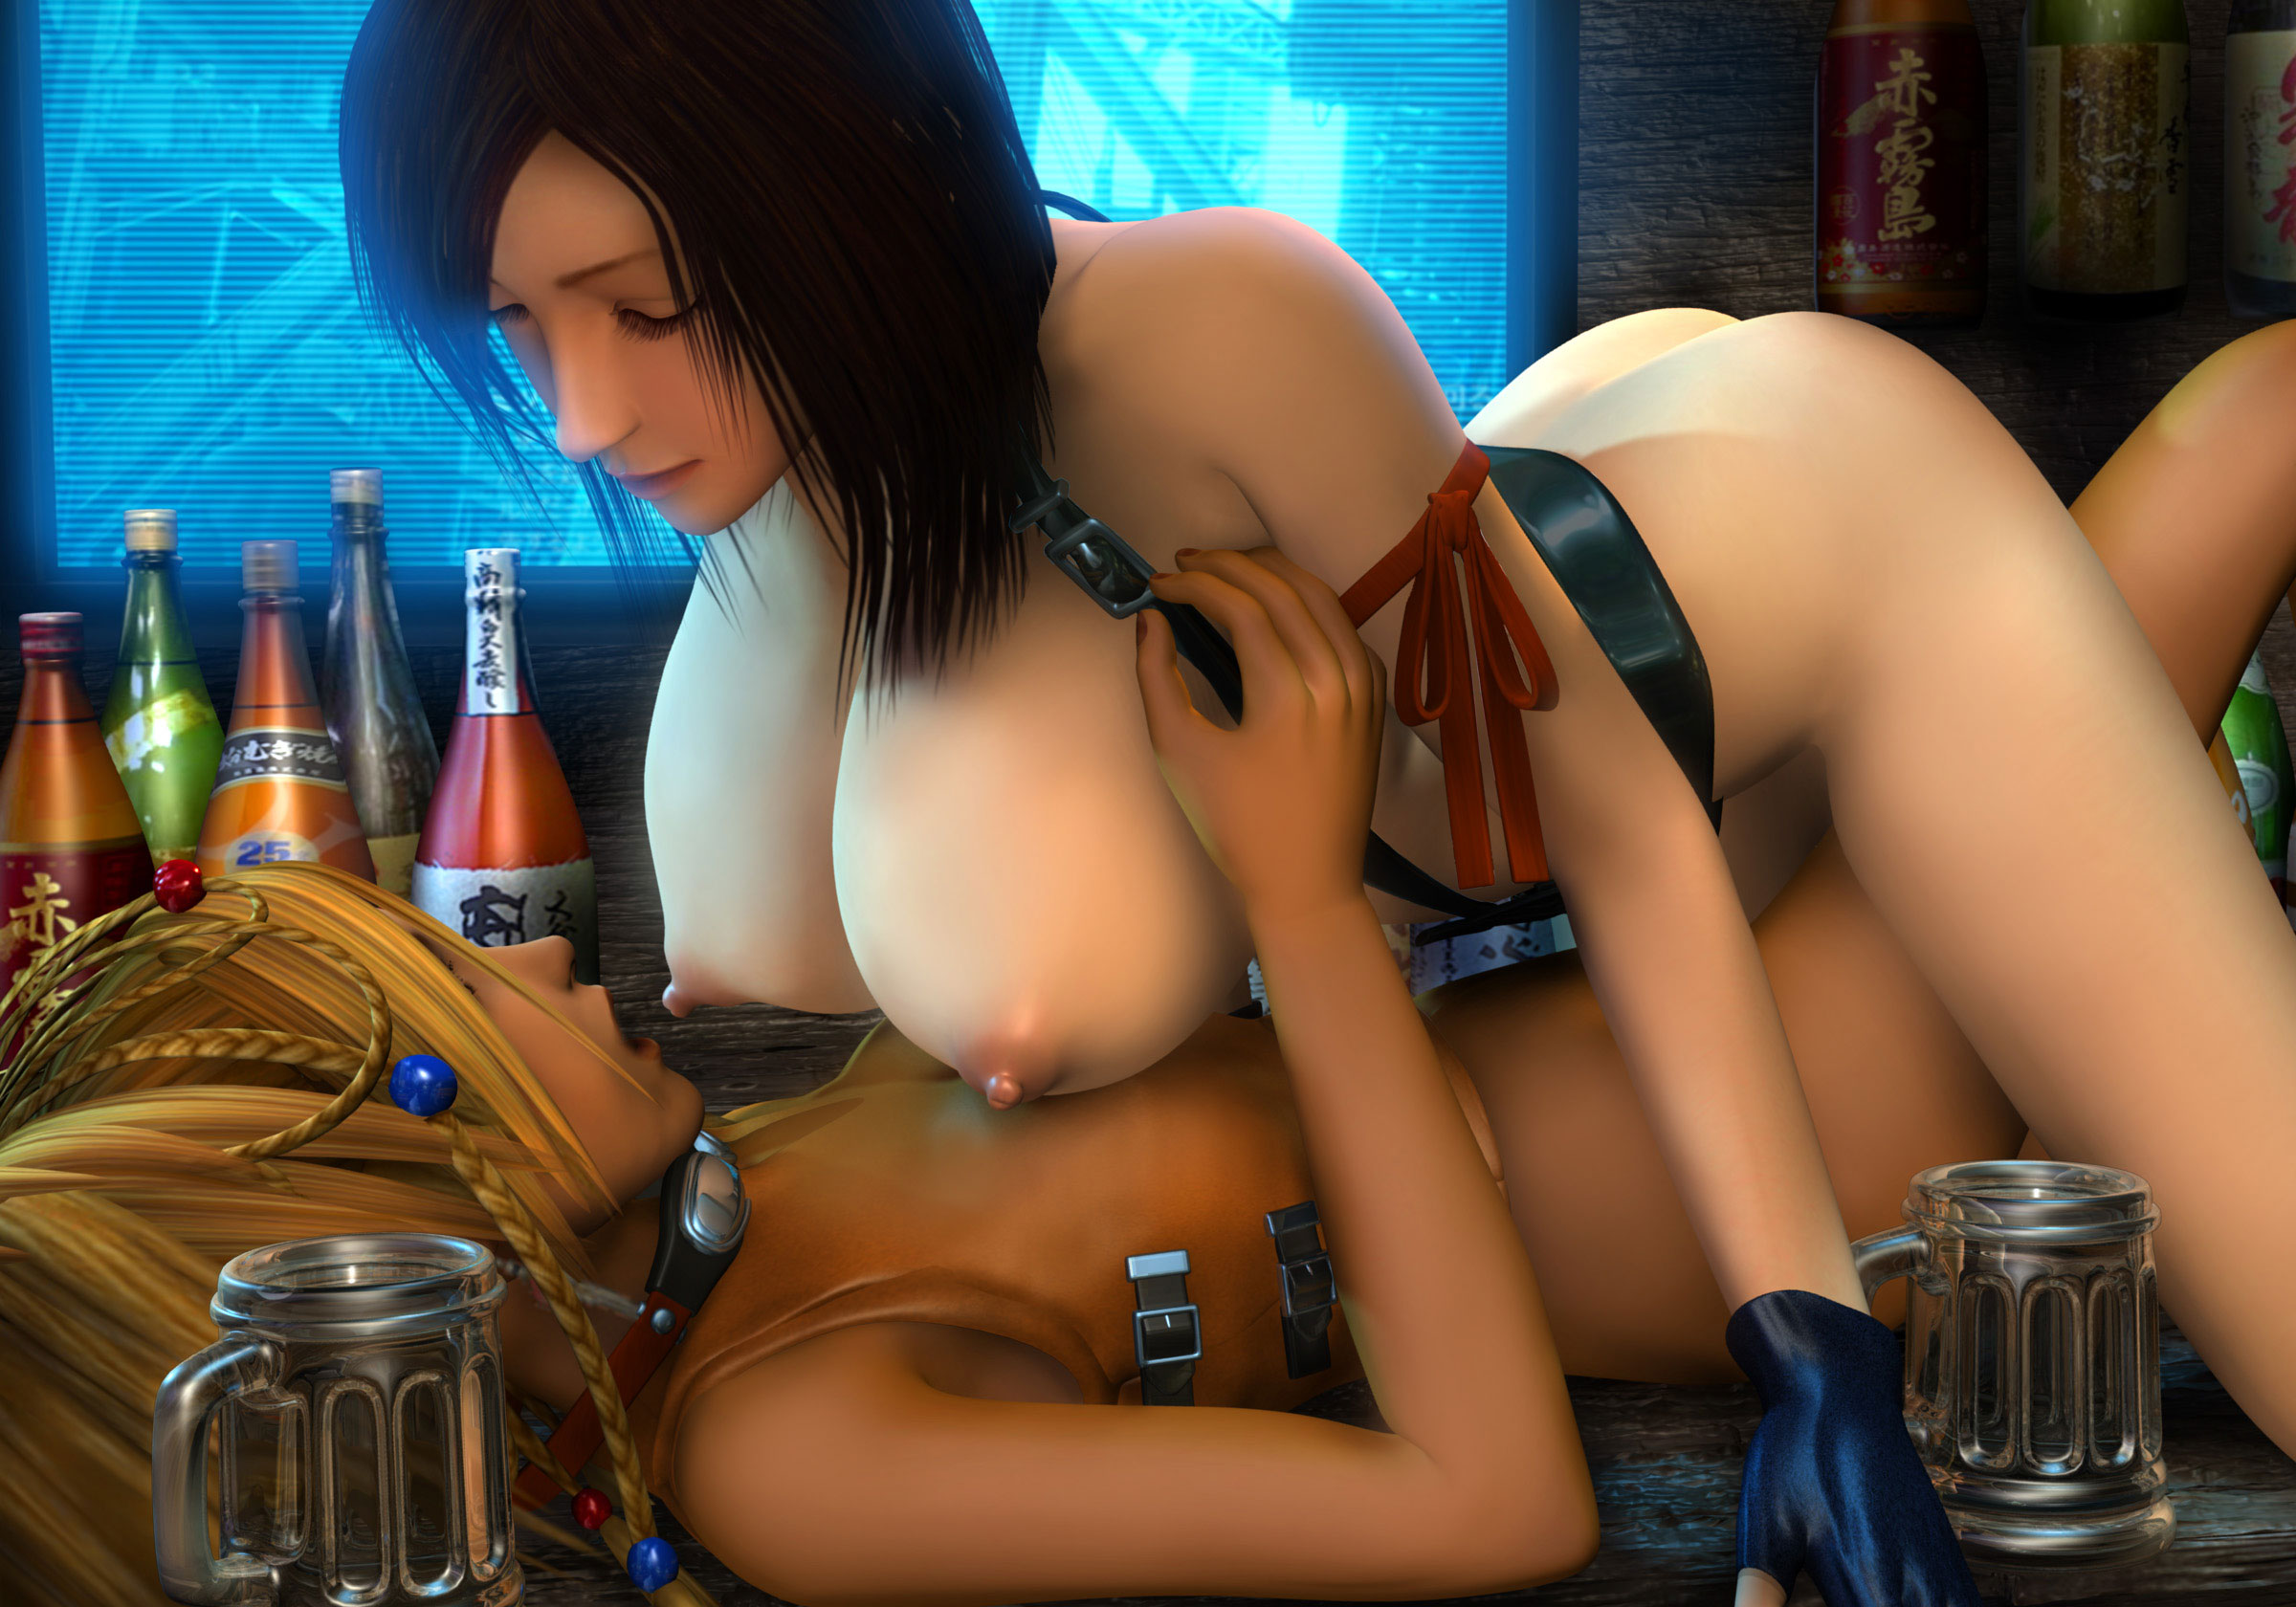 Tifa nude 3d model download erotica clips